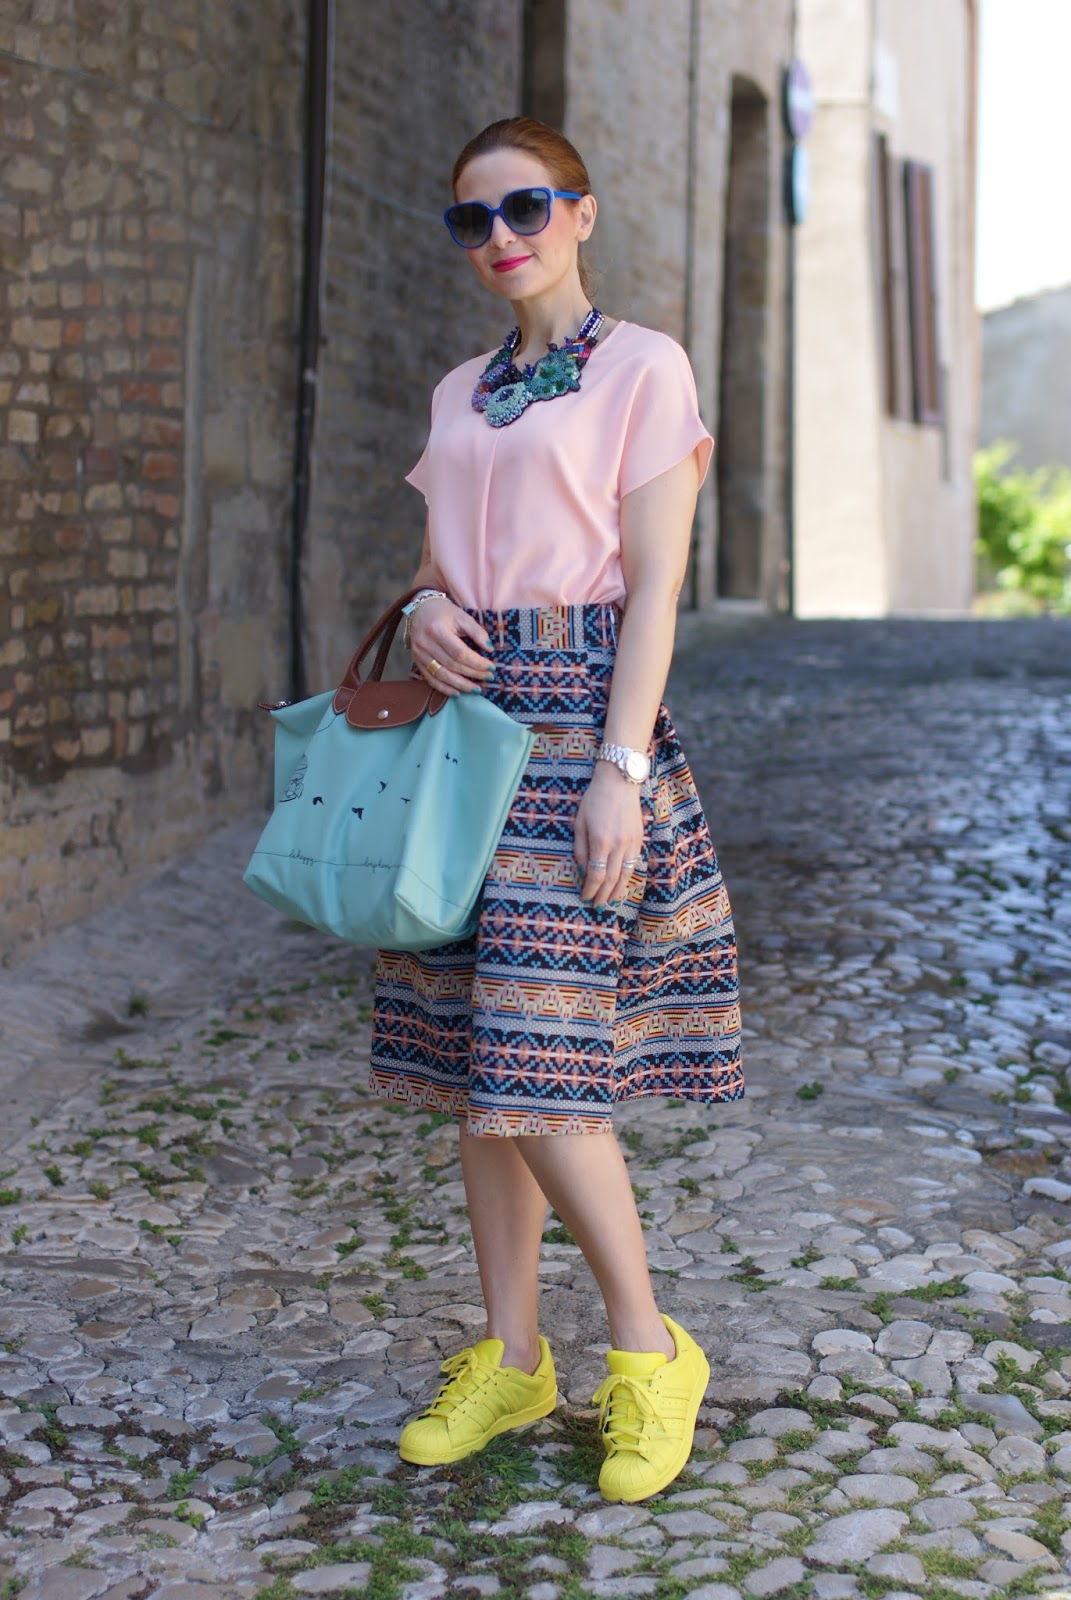 Le Pliage 2015, Longchamp Le Pliage cage aux oiseaux bag, jacquard midi skirt, skirt and sneakers, Fashion and Cookies fashion blog